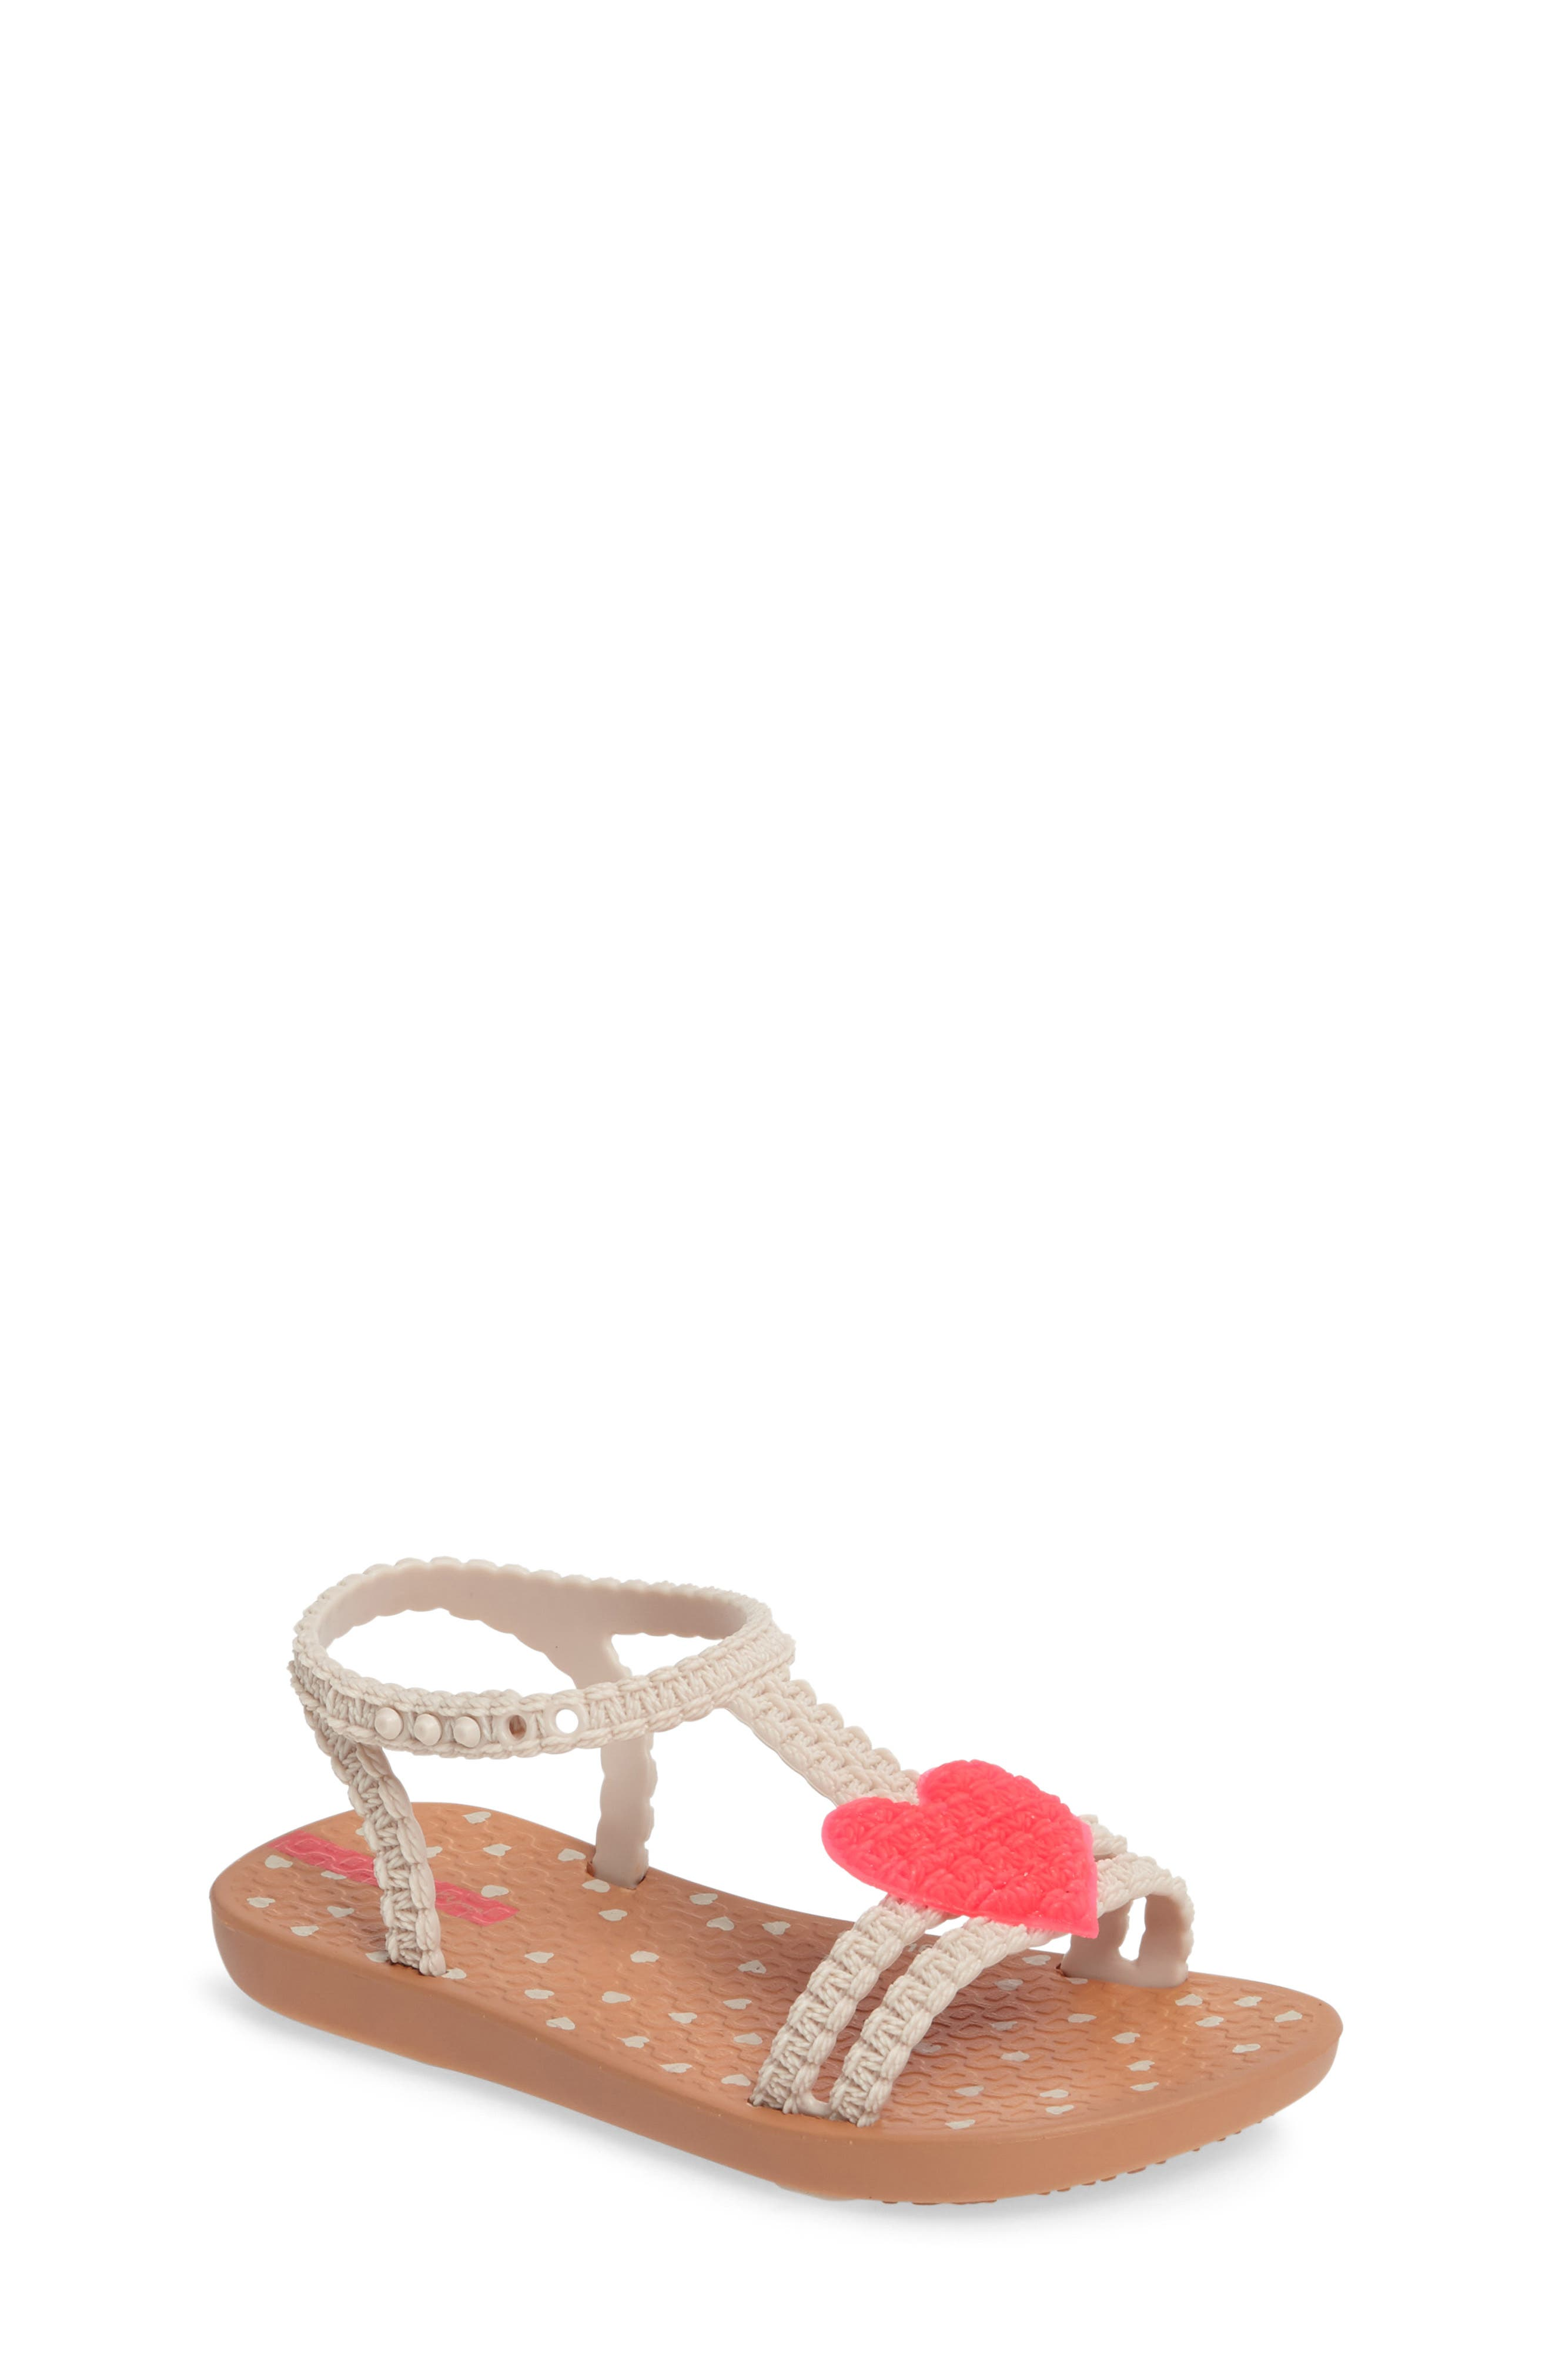 My First Ipanema Sandal,                         Main,                         color, Brown/ Pink